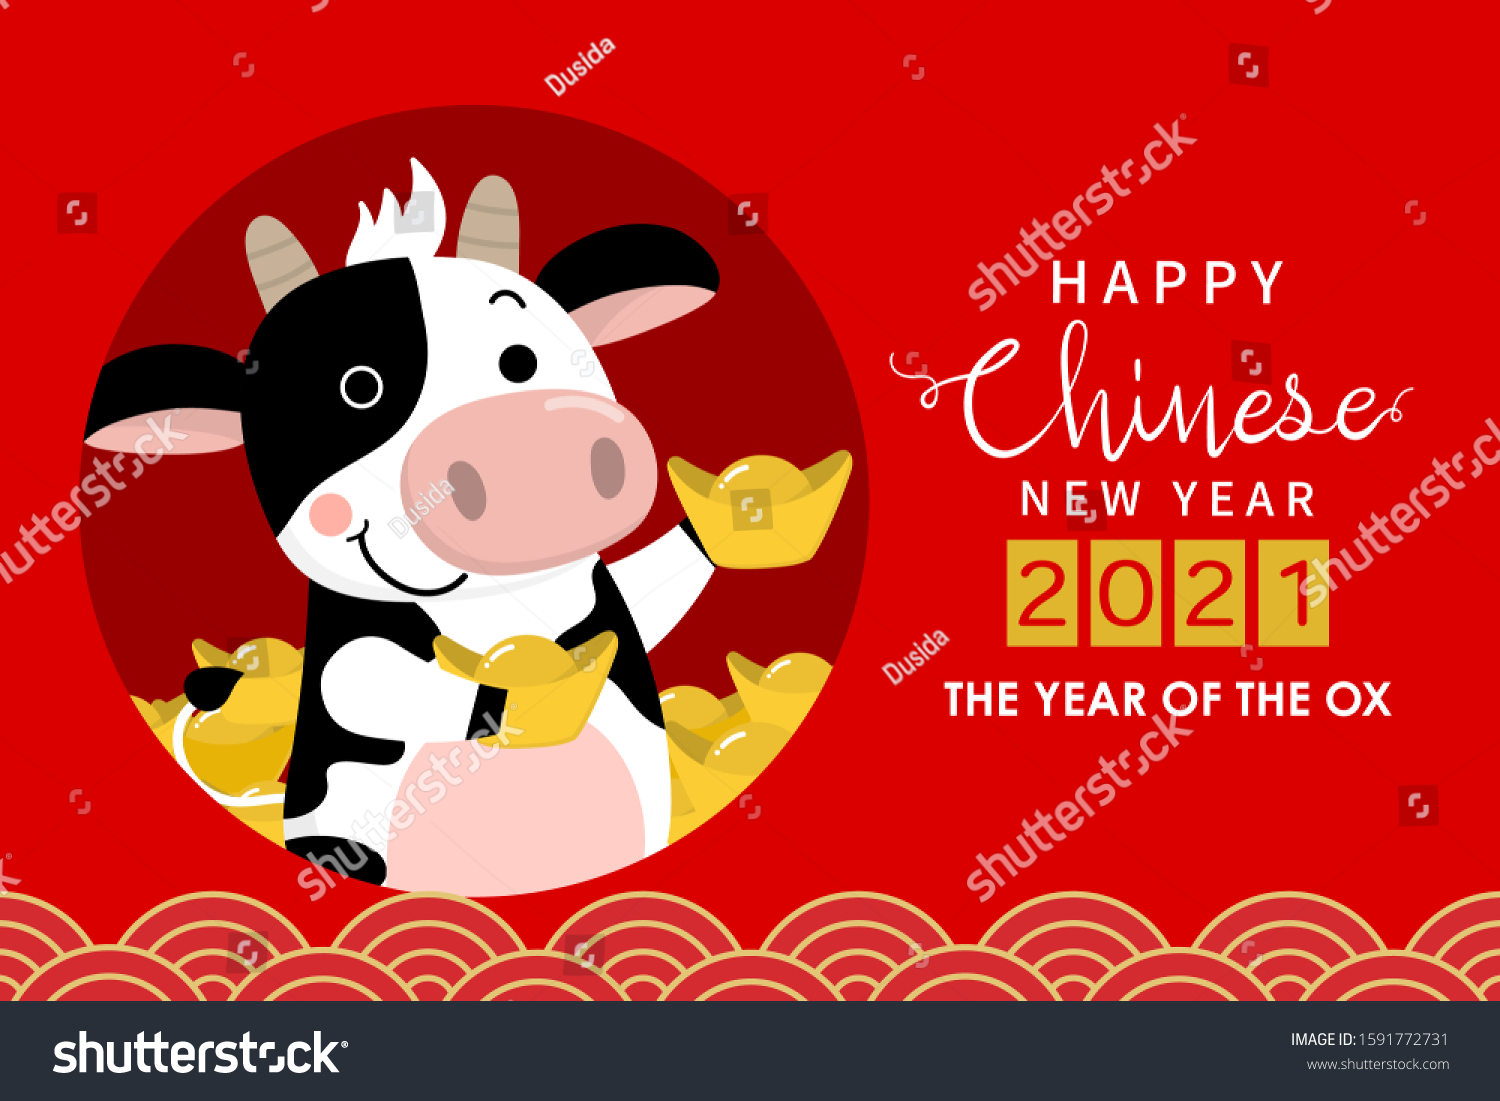 Happy Chinese New Year Greeting Card Stock Vector Royalty Free 1591772731